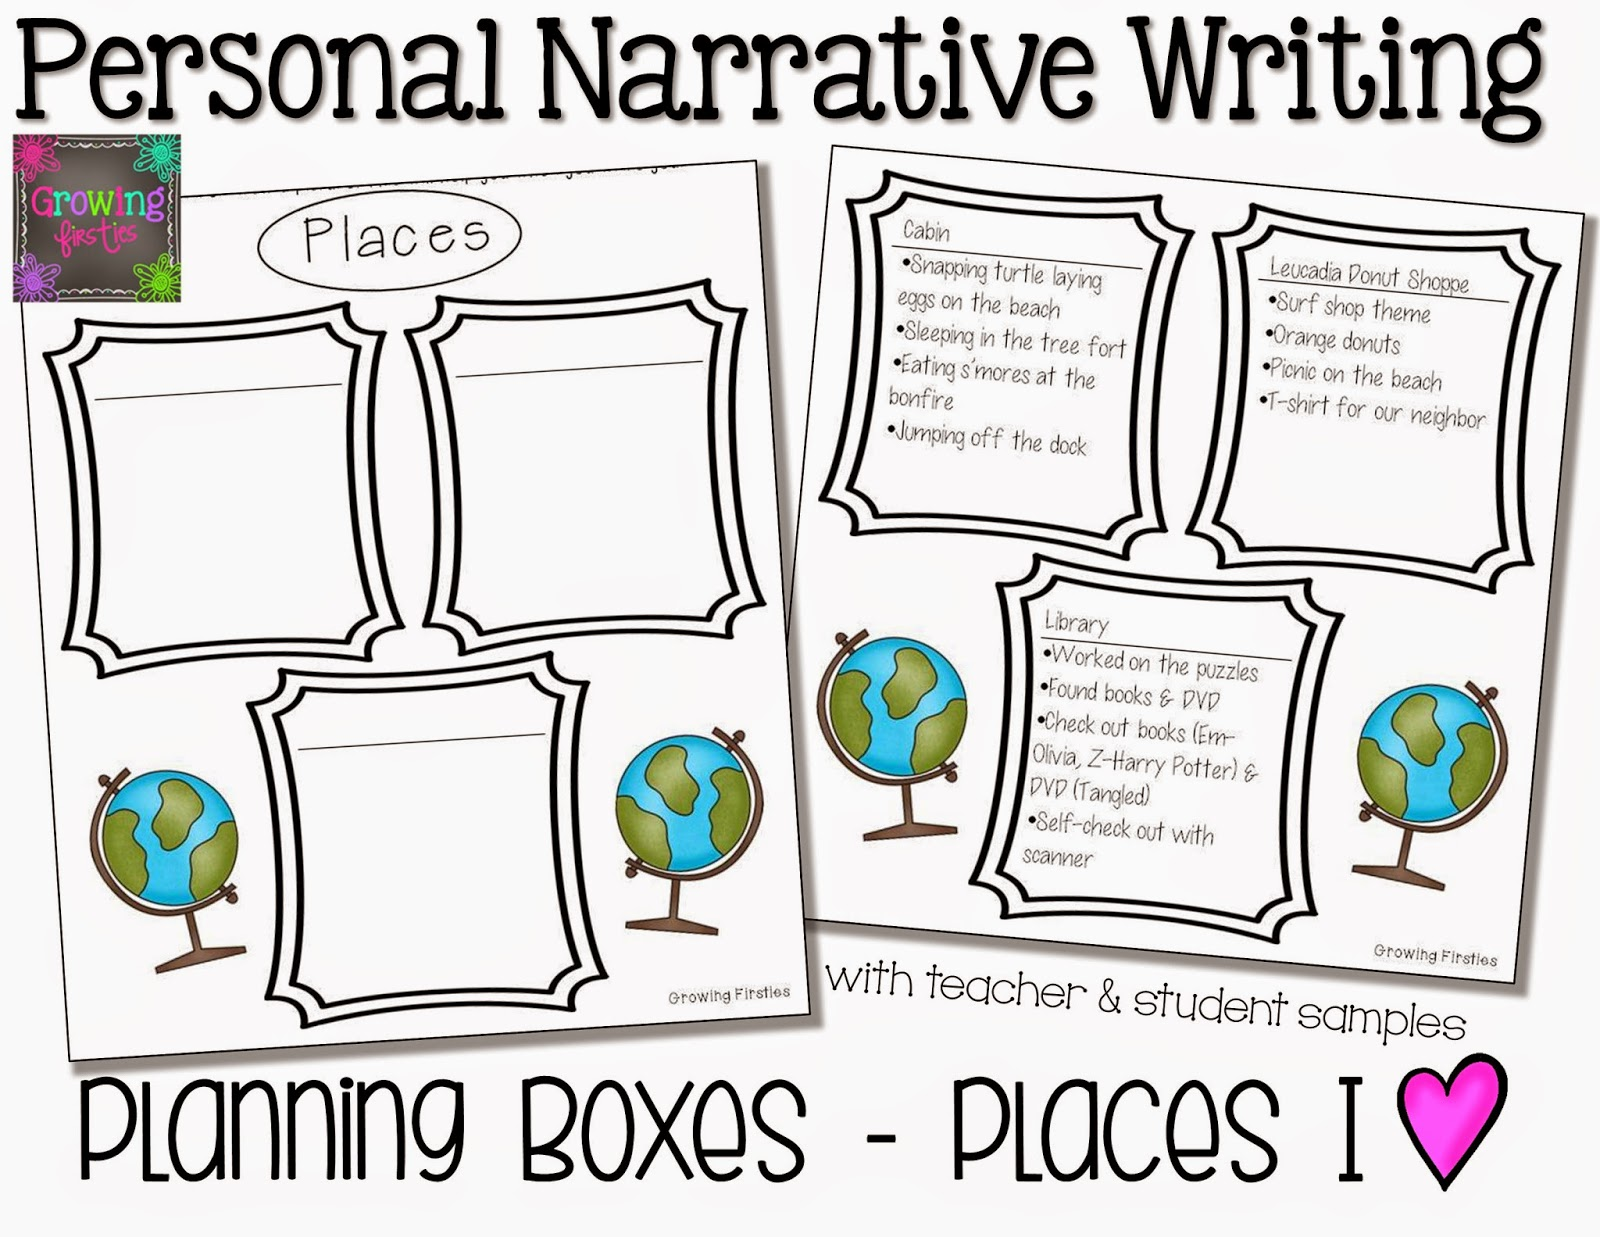 Personal Narrative Writing Workshop Unit Growing Firsties